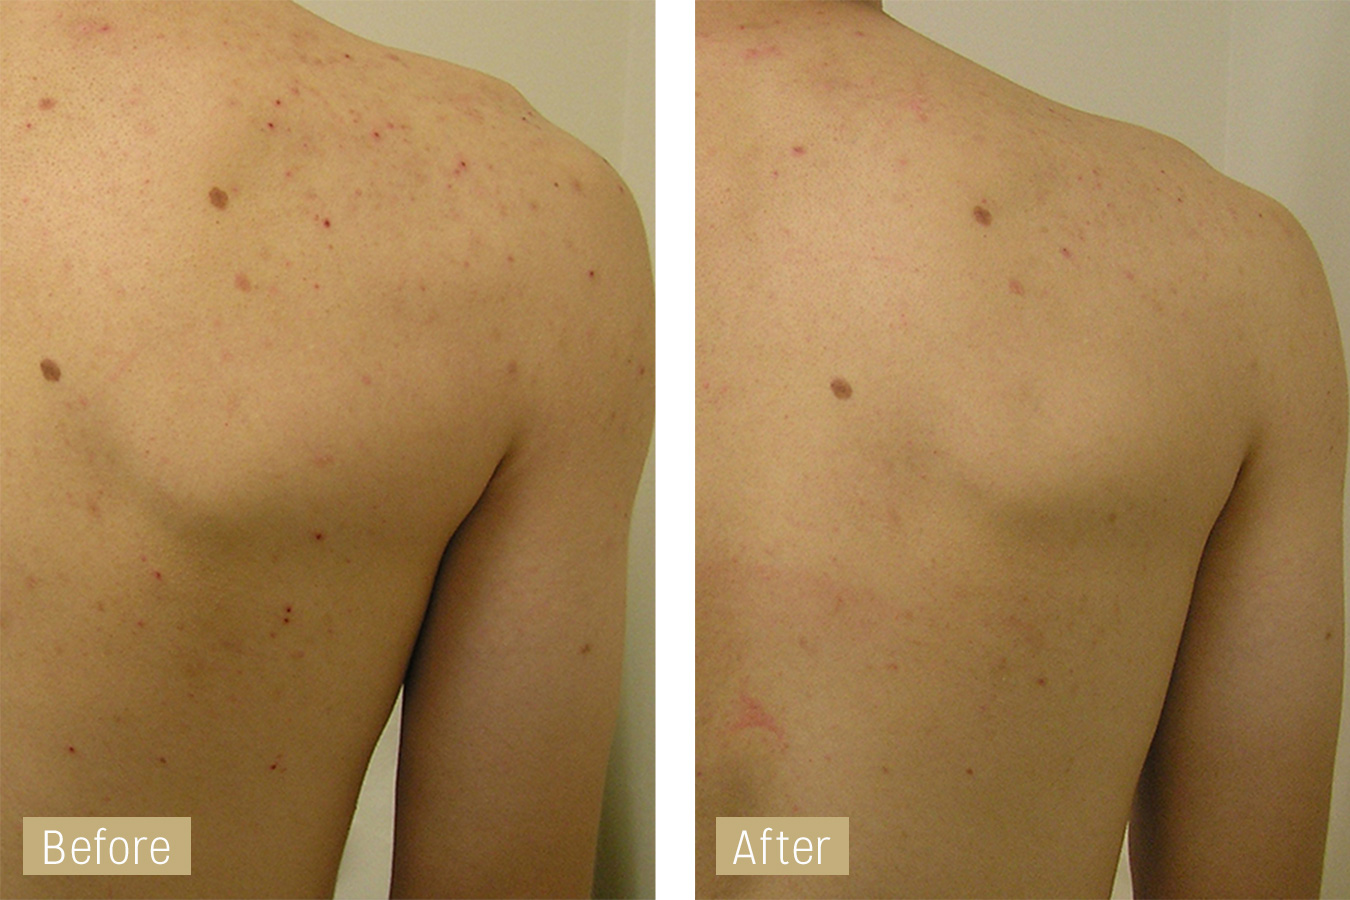 acne treatment with hydrafacial - before and after image